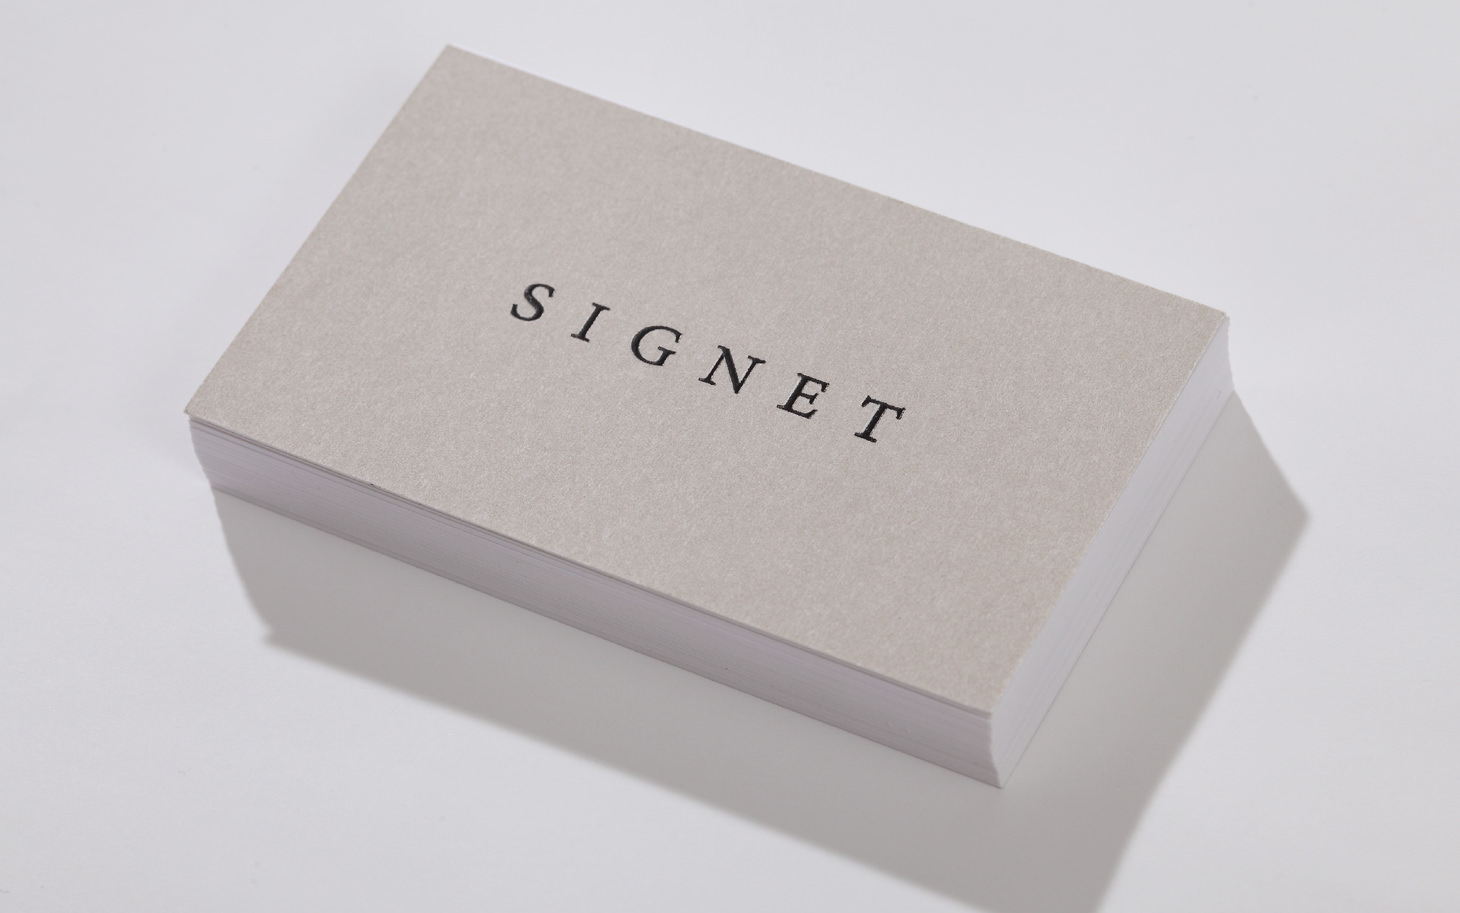 Signet_Stationary_01.jpg